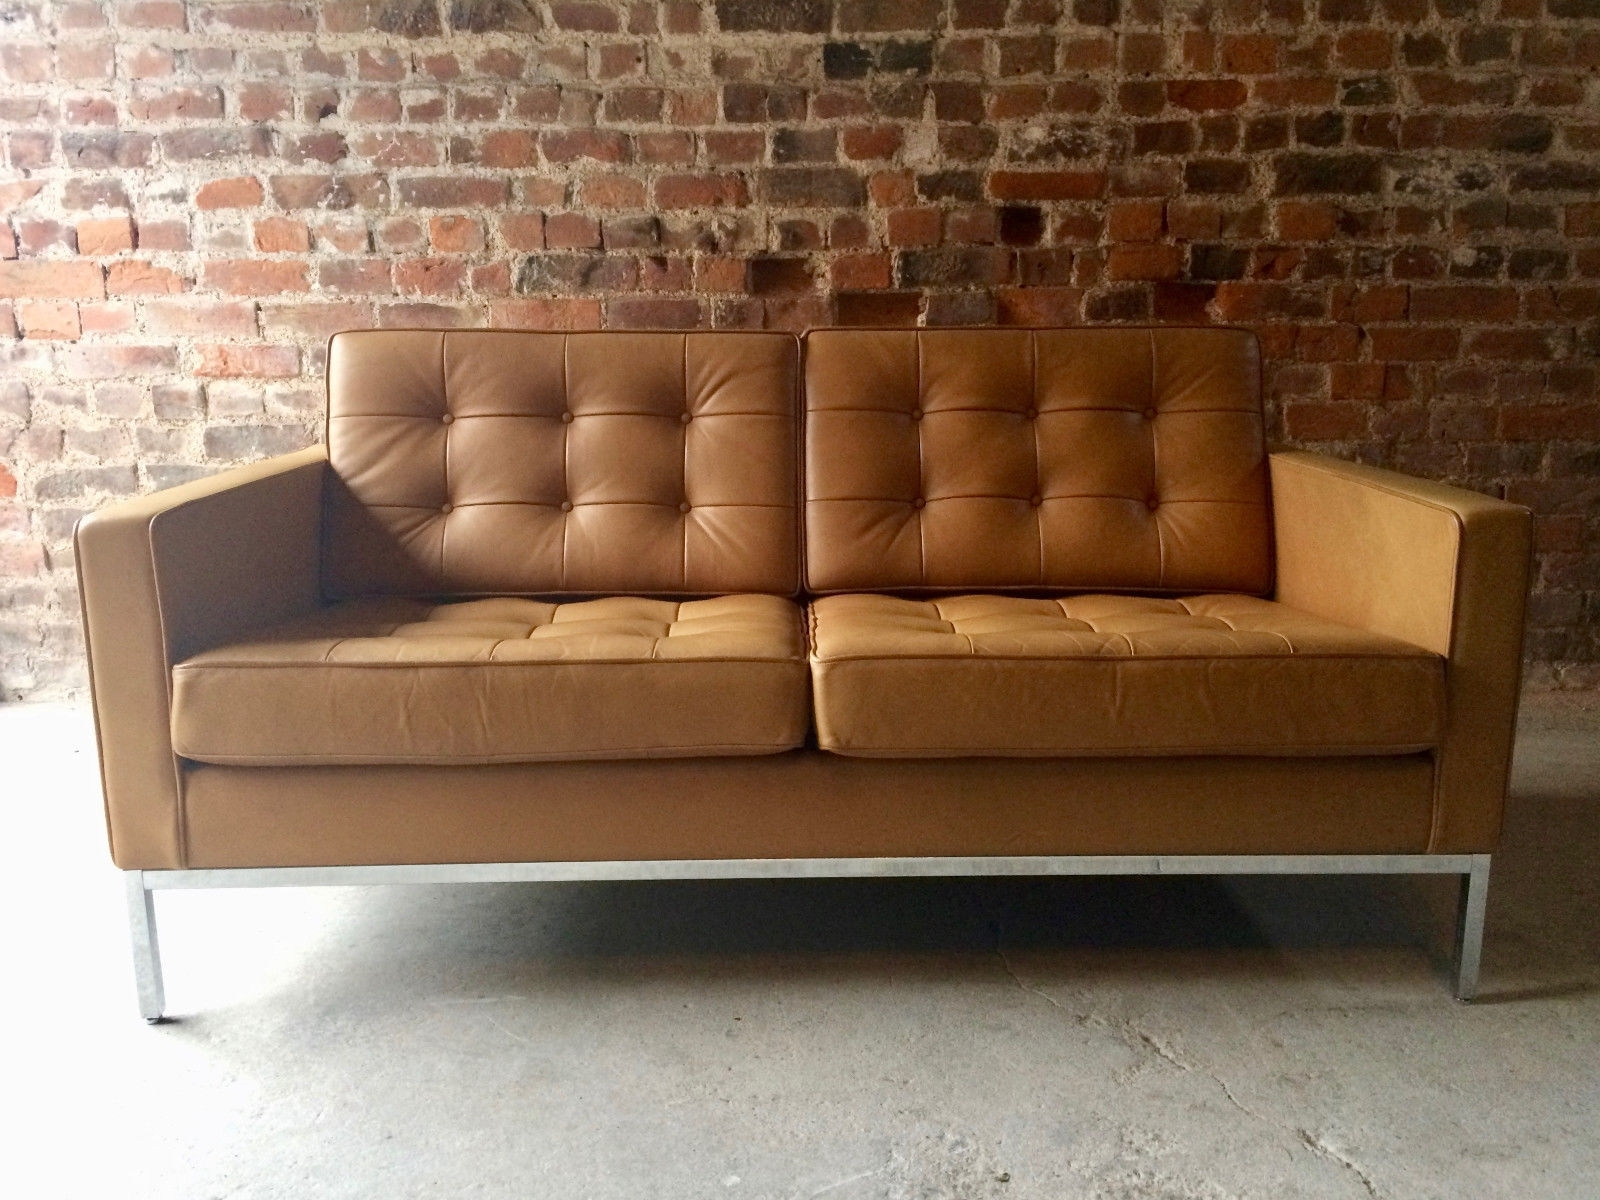 Latest Florence Leather Sofas In Vintage 2 Seater Leather Sofaflorence Knoll For Knoll For Sale (View 8 of 15)